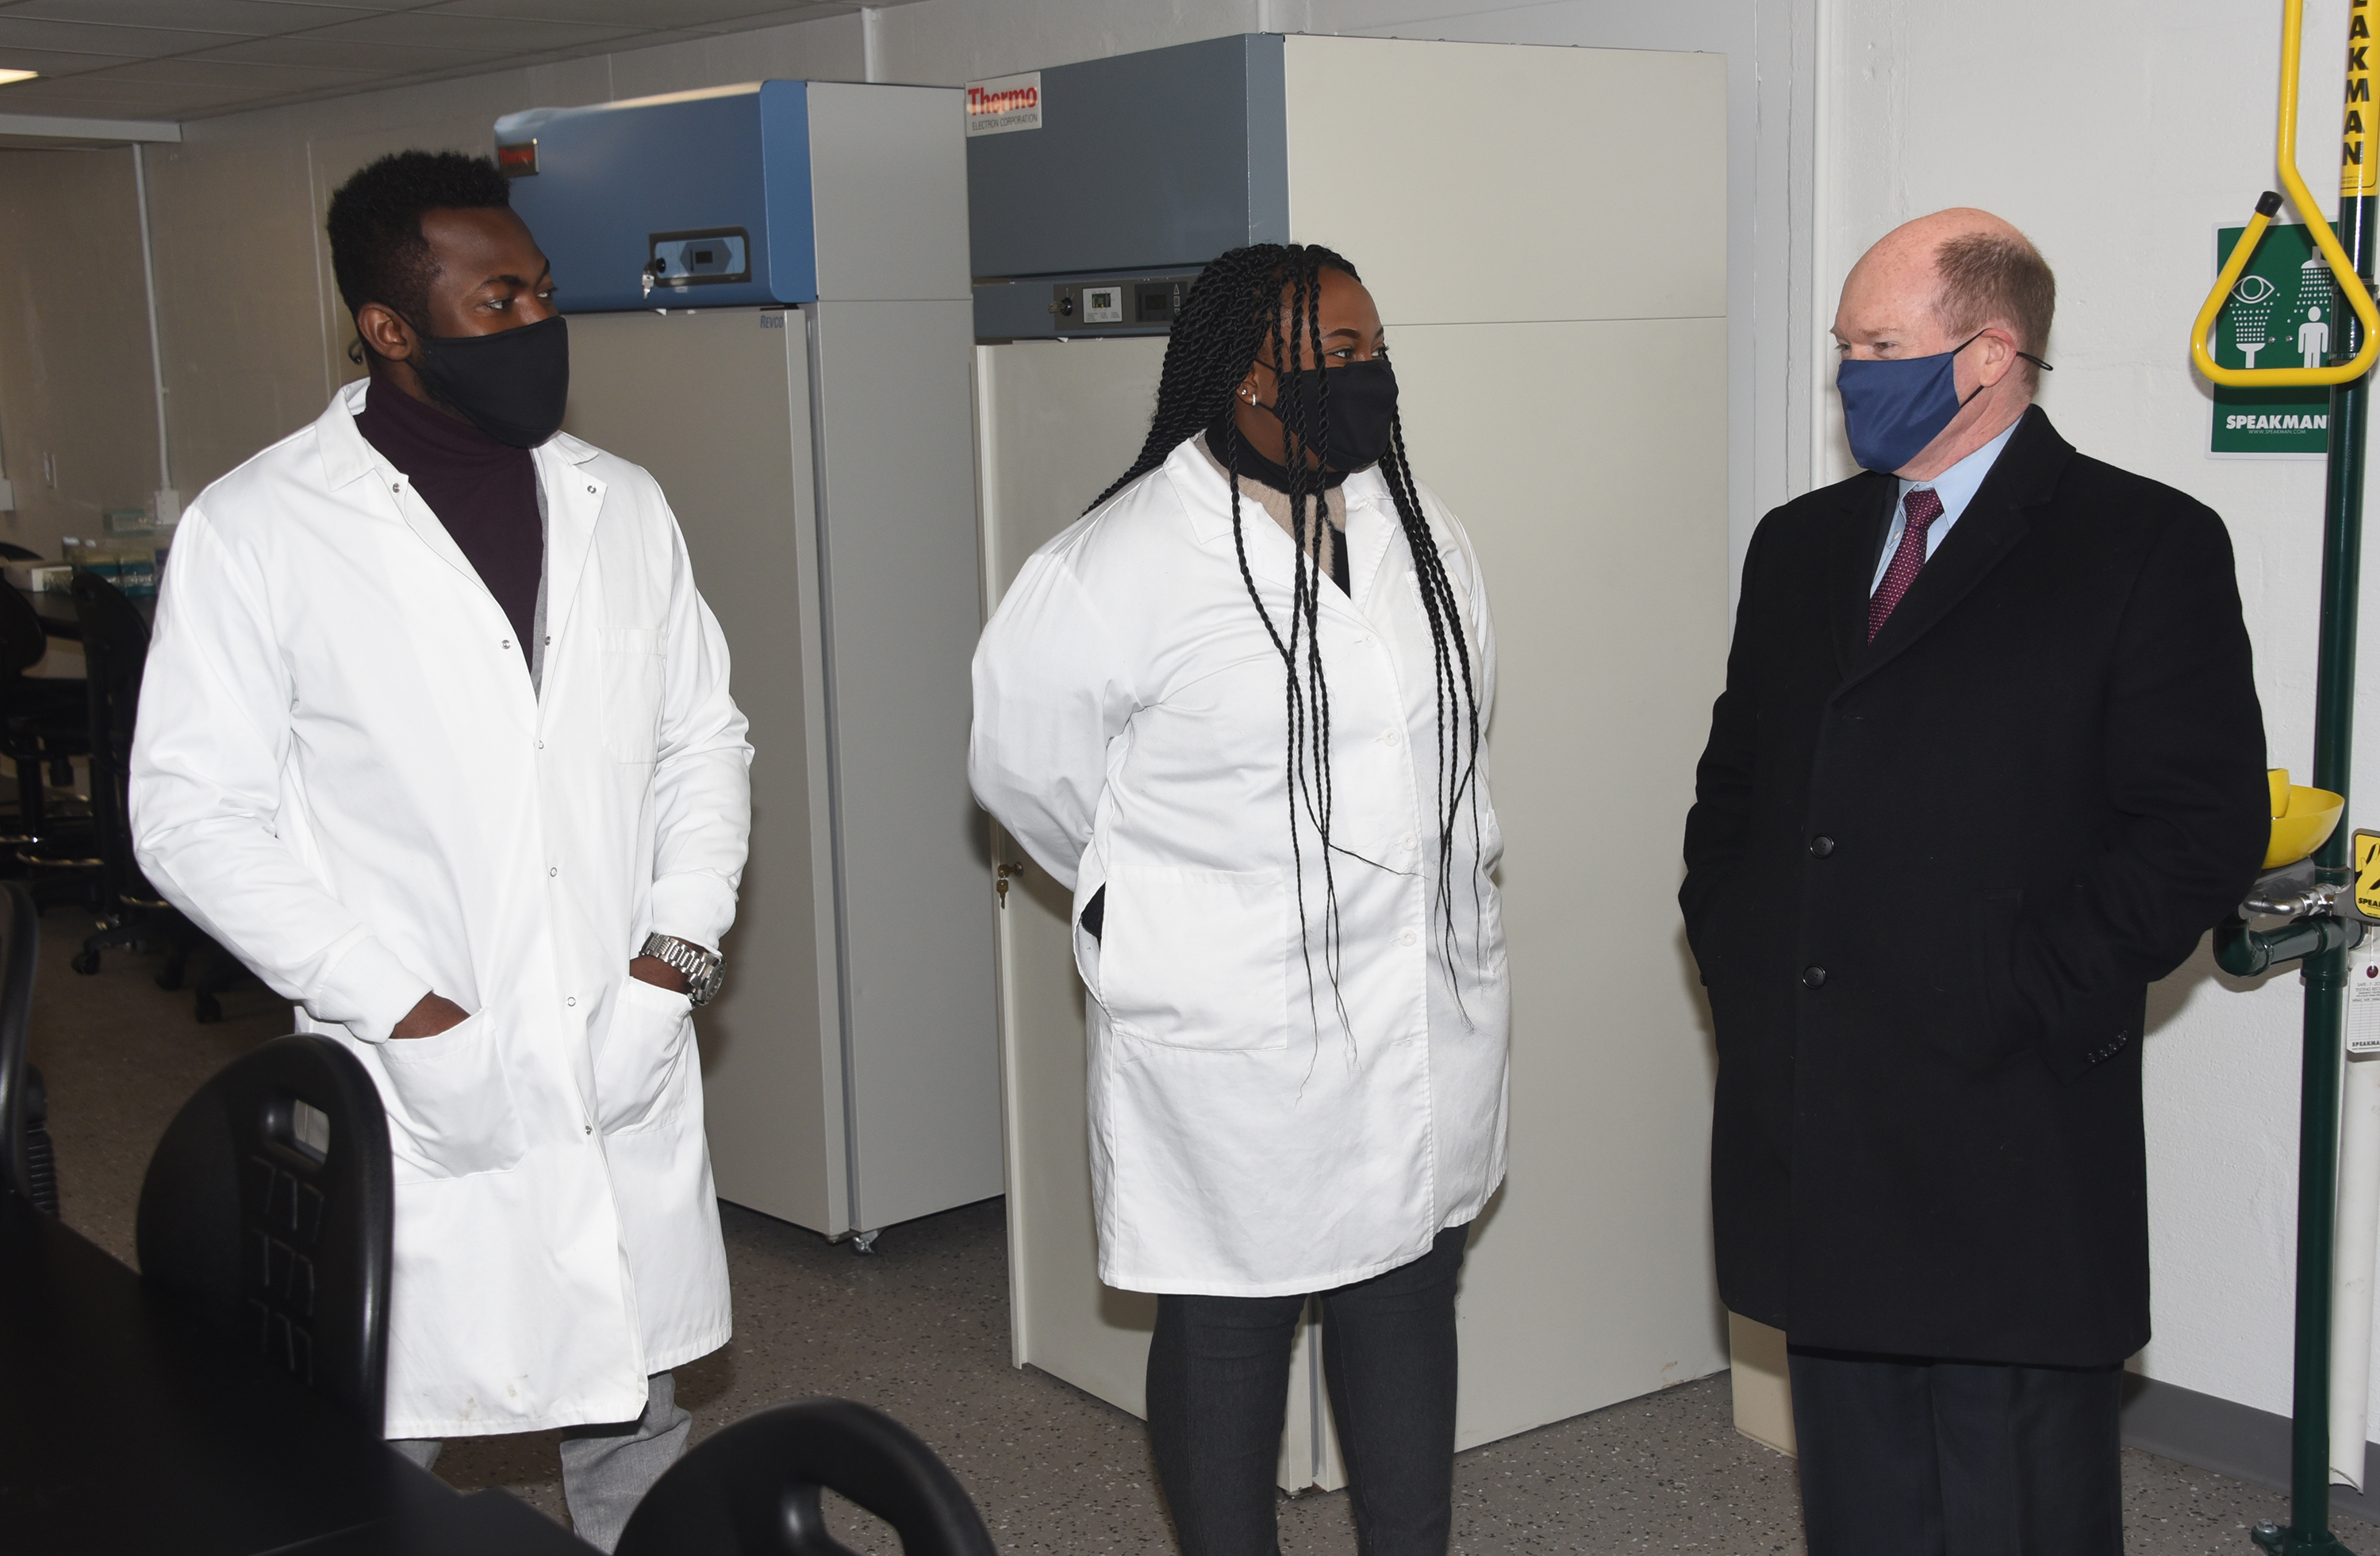 (L-r) Edward Addison and Audrey Janga -- University Alumni who work in the lab -- talk about their work with Sen. Chris Coons.